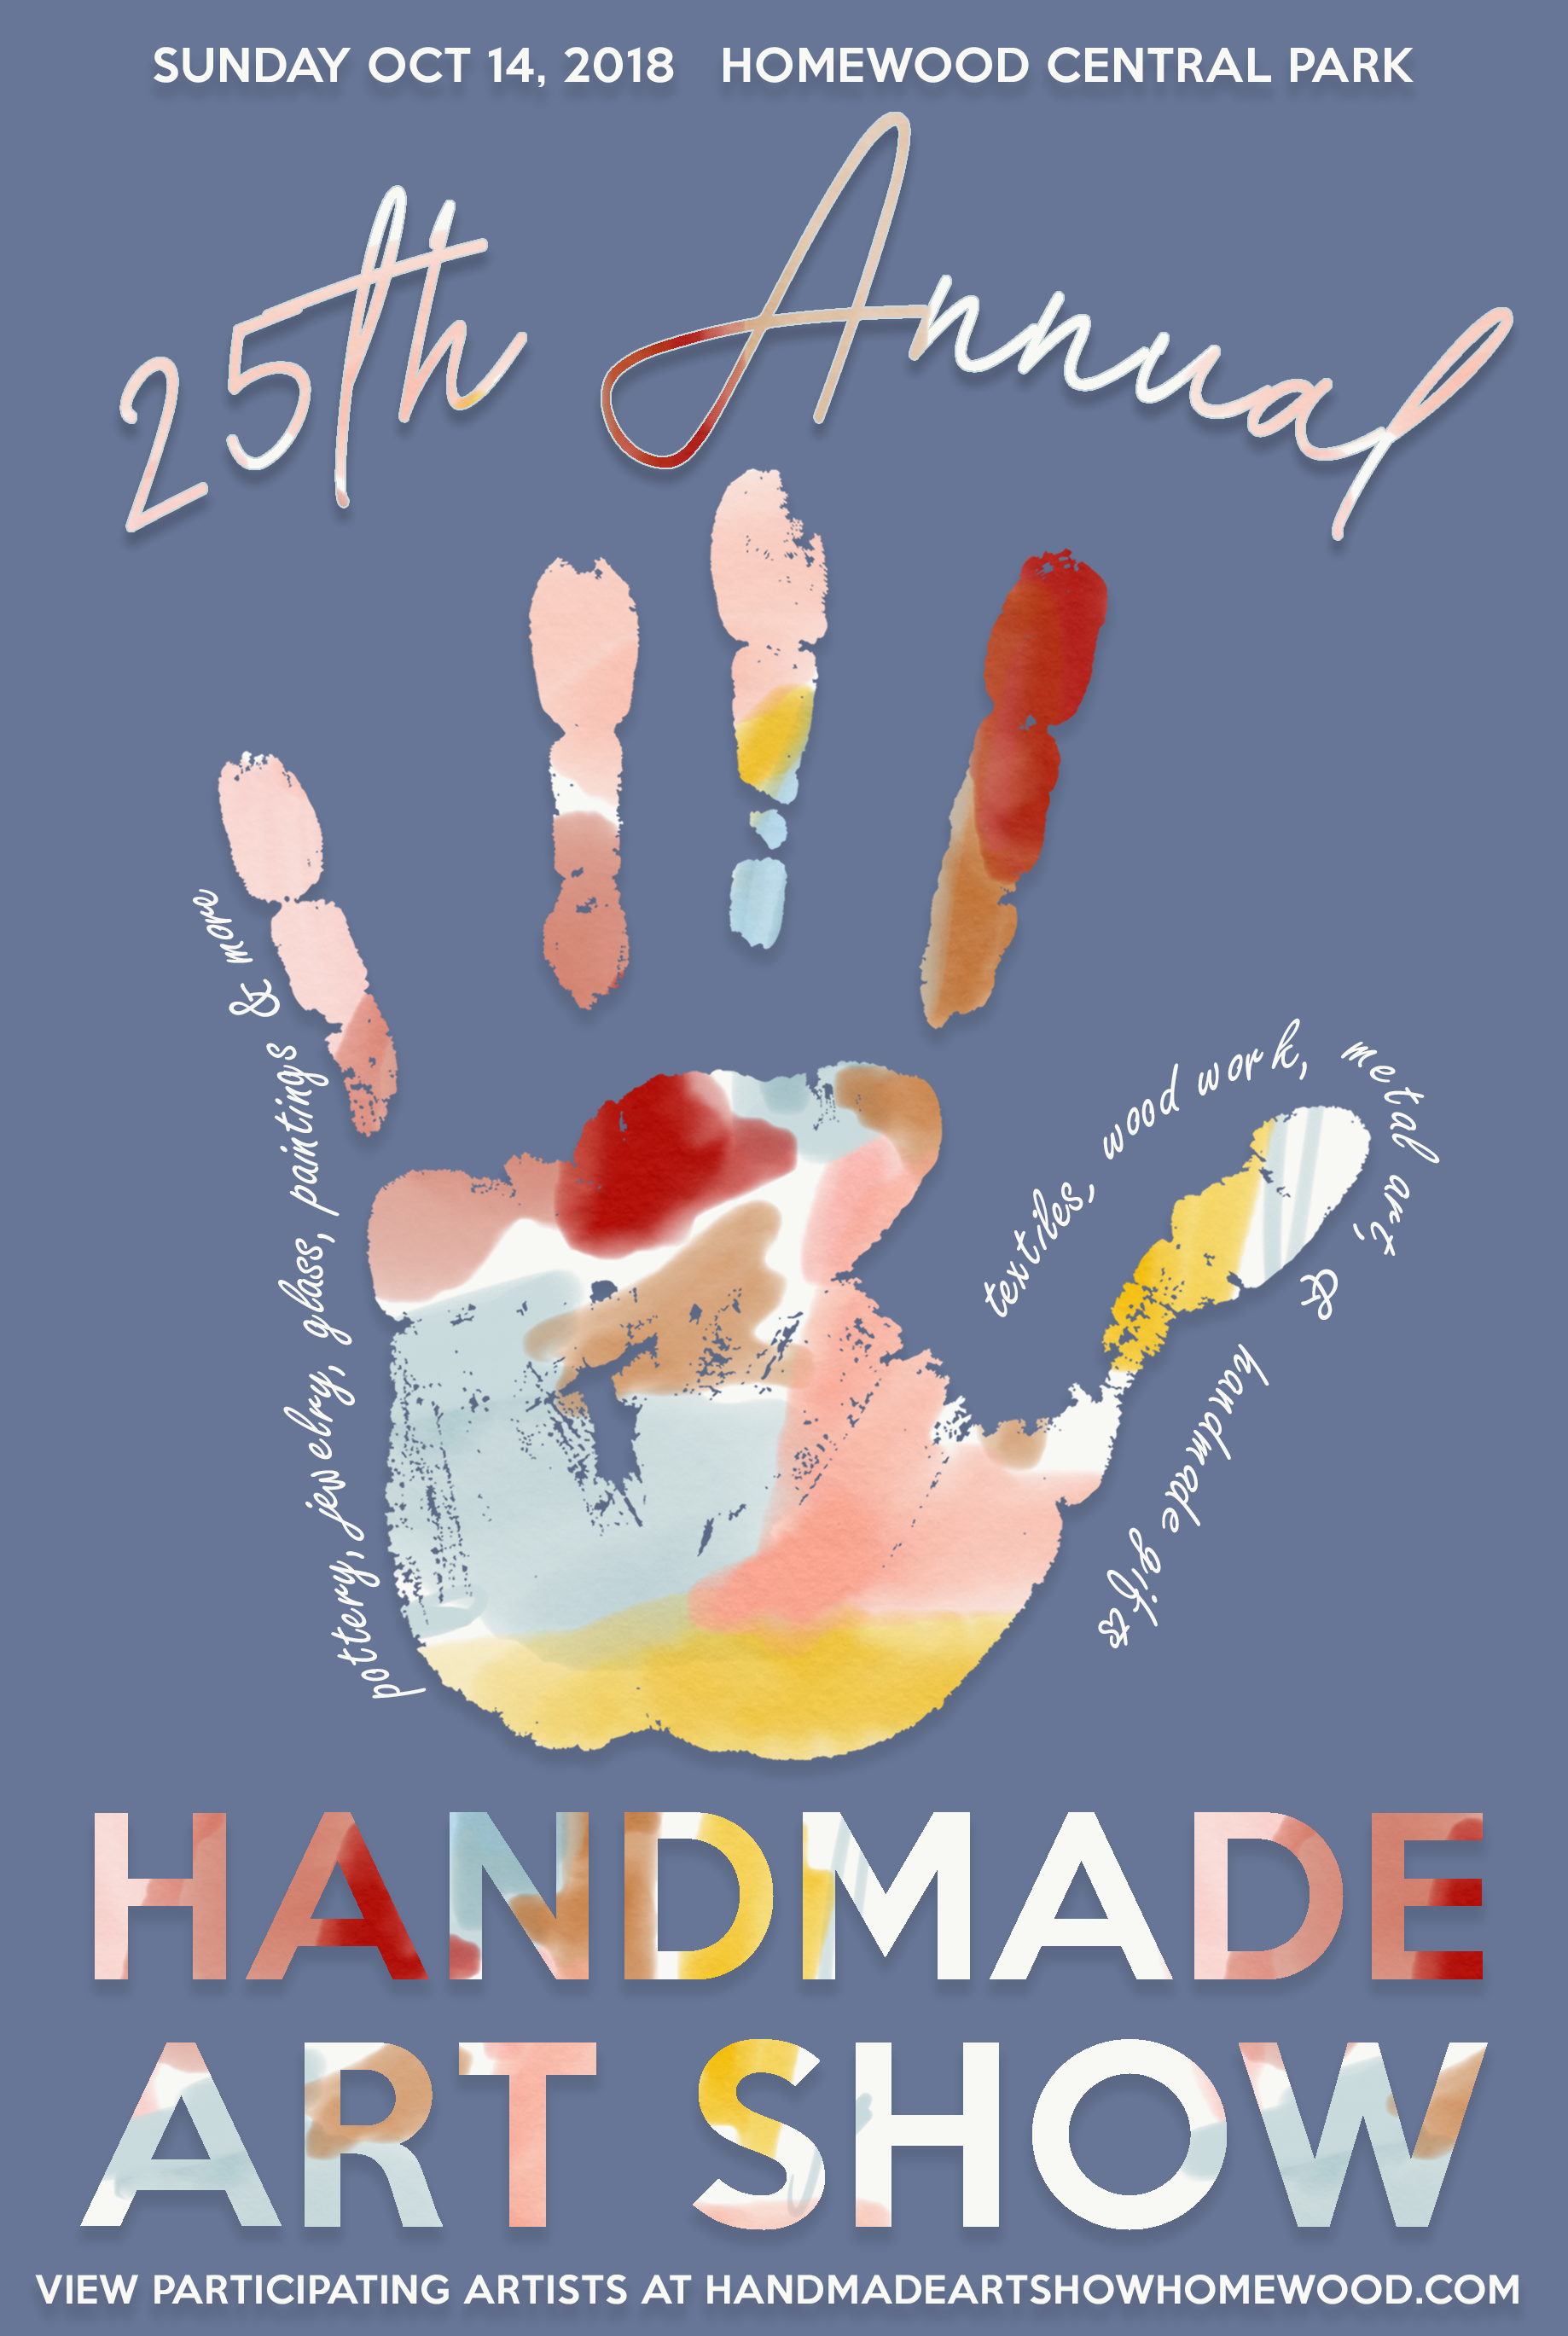 Pay your booth fee - If you've already been accepted to participate in the 26th Annual Handmade Art Show, use this link to pay your booth fee